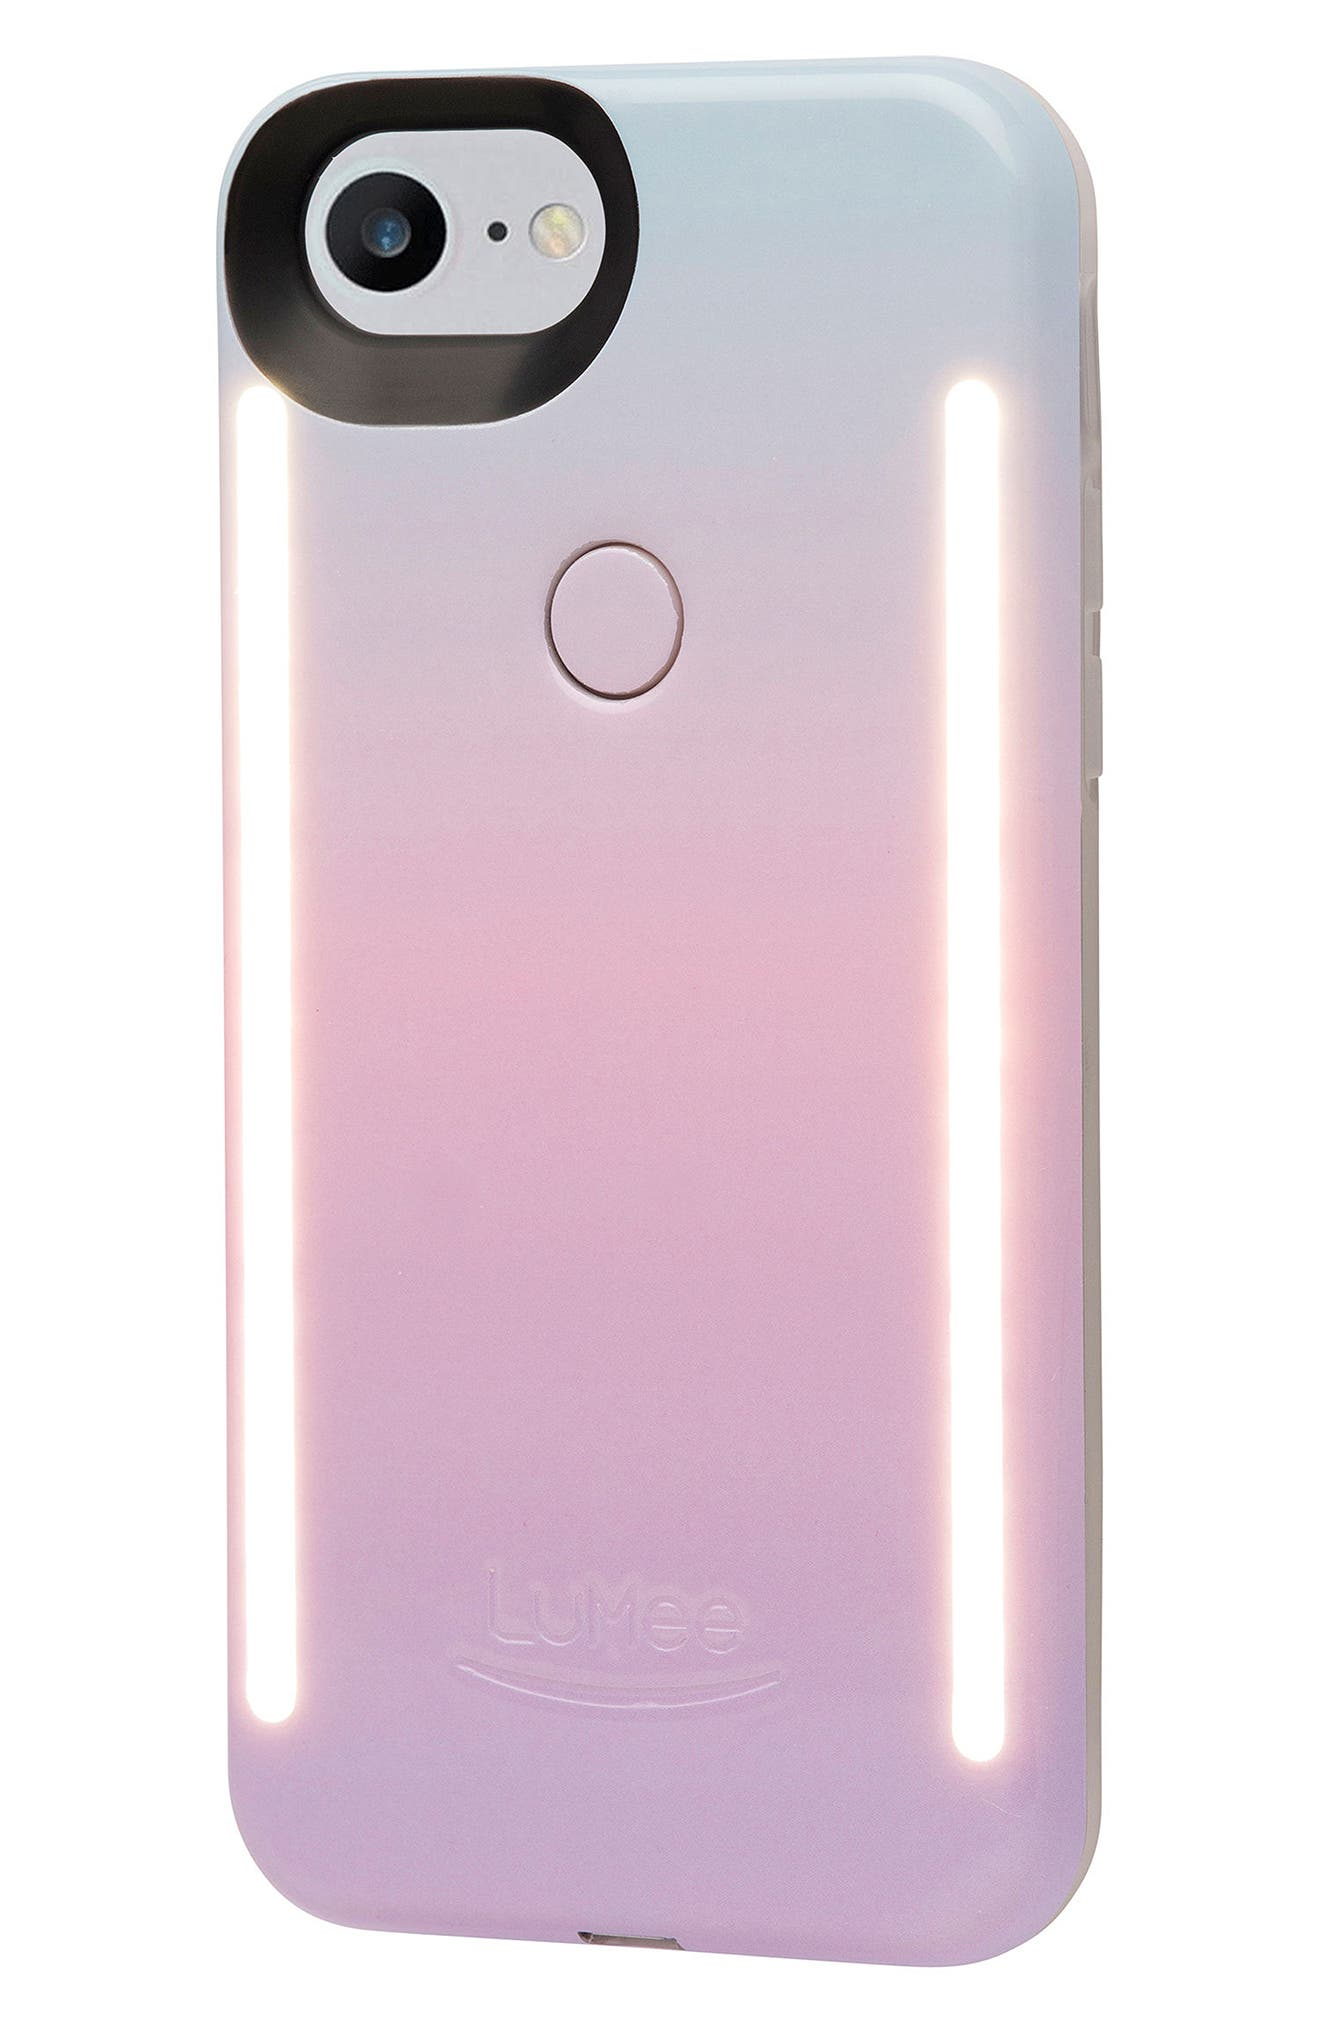 Duo LED Lighted iPhone 6/6s/7/8 & 6/6s/7/8 Plus Case,                             Alternate thumbnail 4, color,                             CASCADE